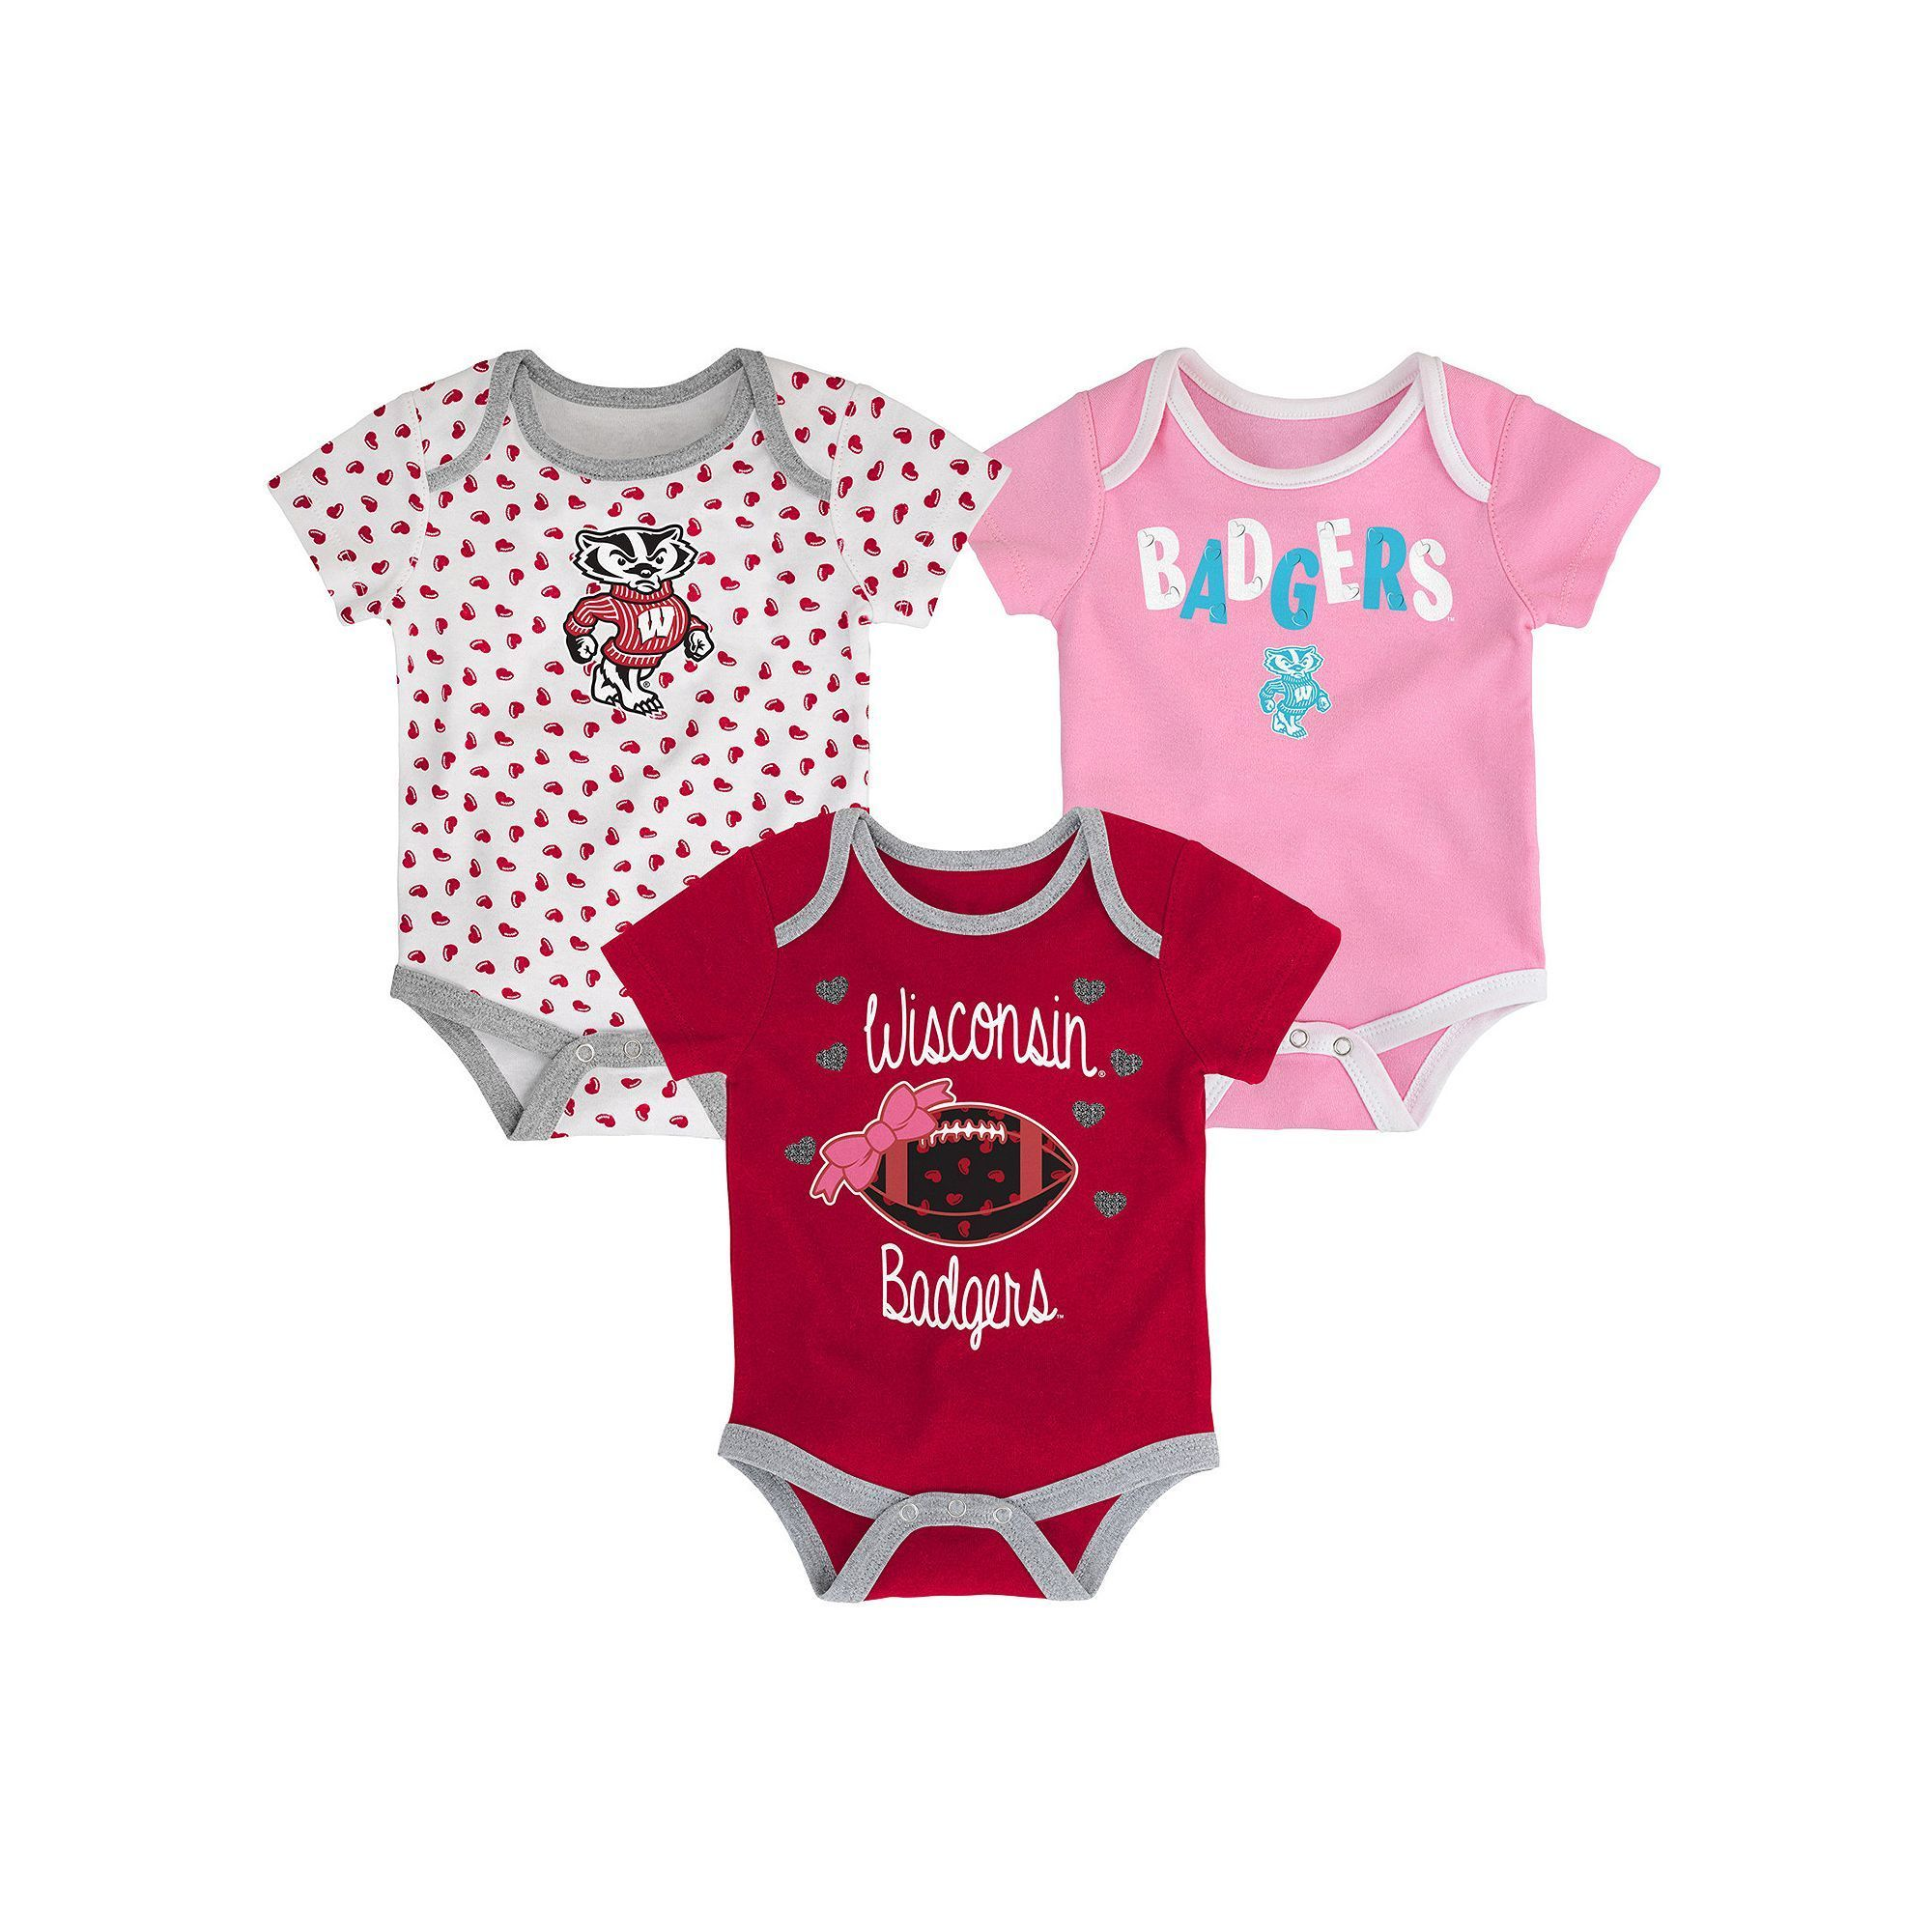 Cutest Baby Clothing and Accessories Ideas Part 2